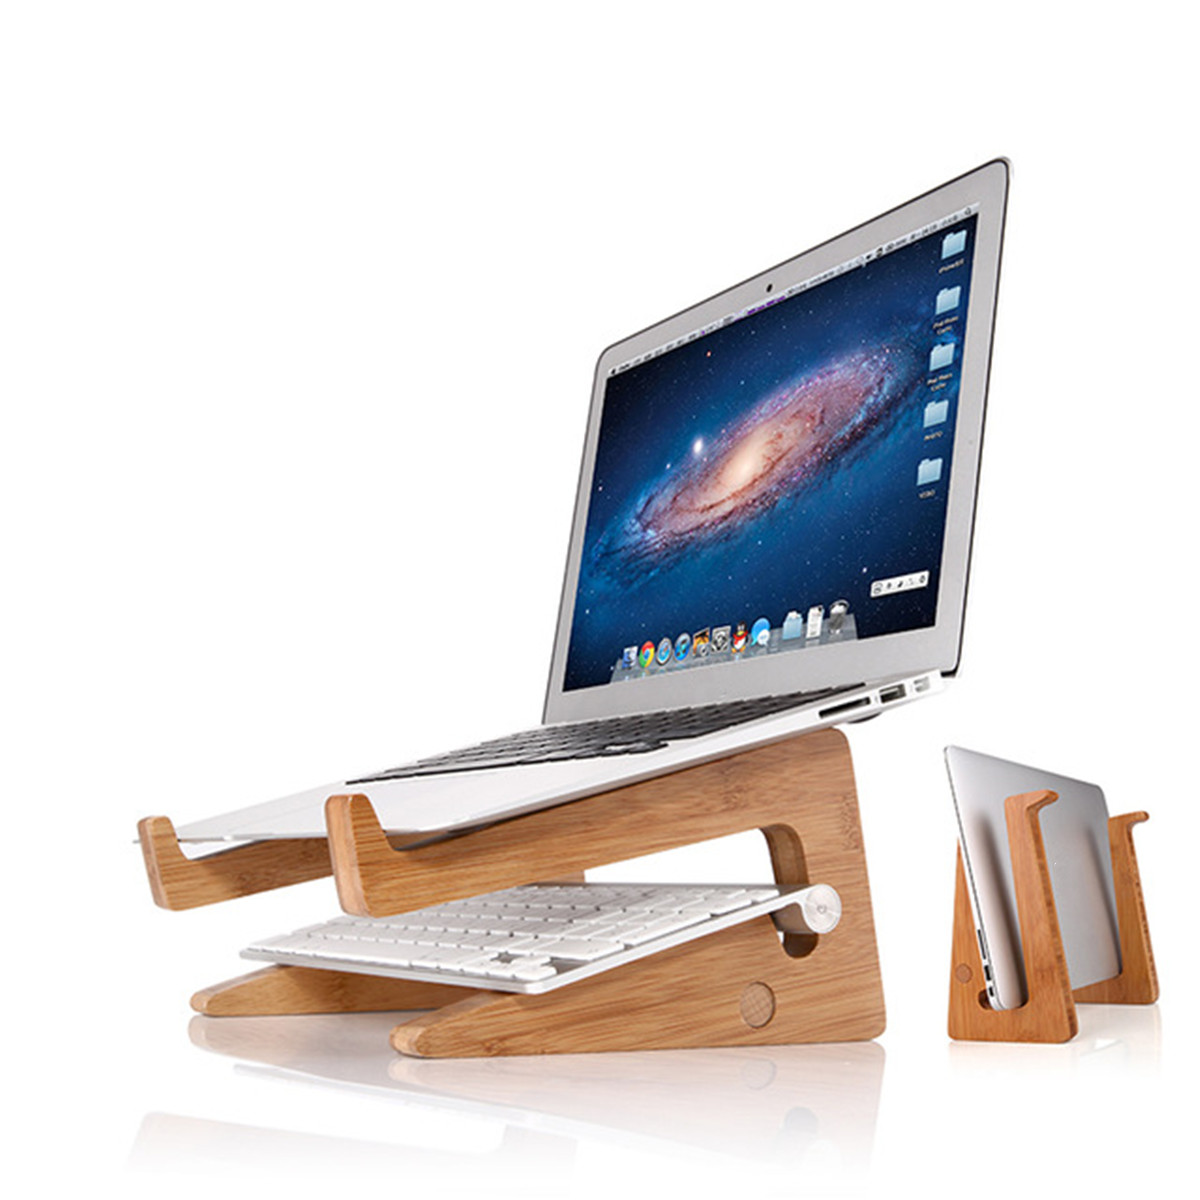 Detachable Laptop Desk Laptop Stand Wooden Holder Mount For Macbook Tablet PC Notebook Portable